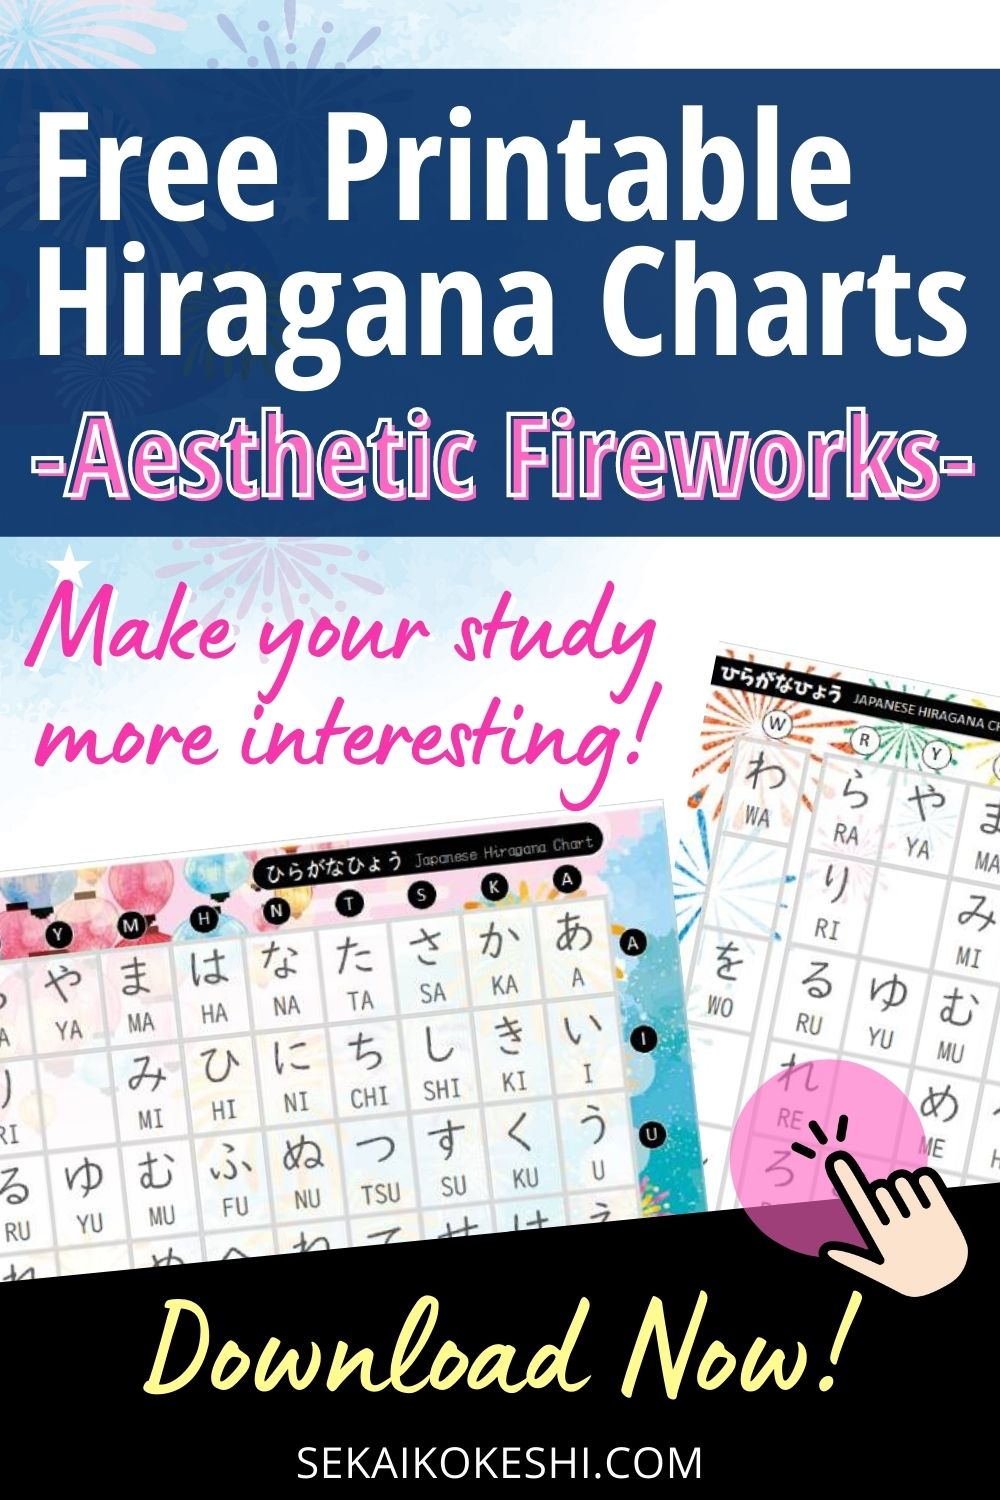 free prntable hiragana charts, aesthetic fireworks, make your study more interesting! download now! sekaikokeshi.com